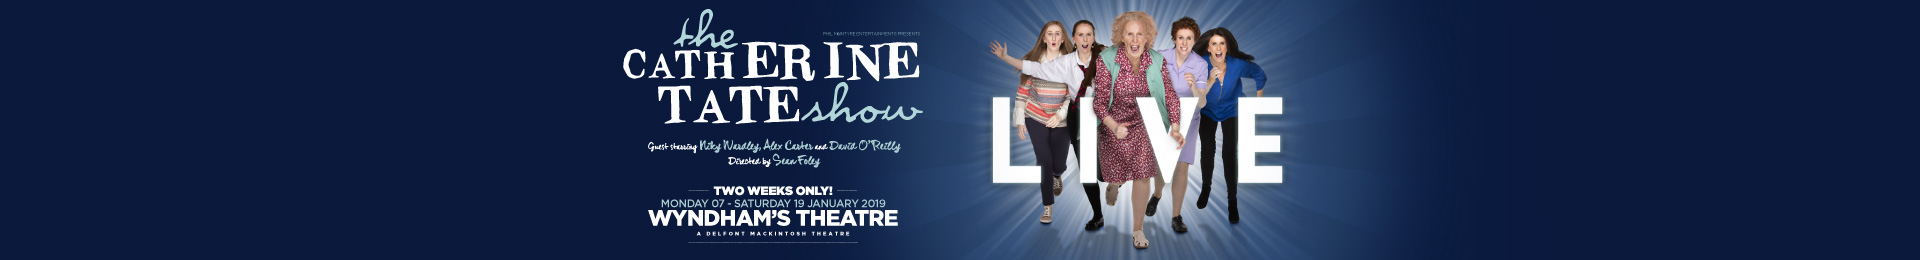 The Catherine Tate Show Live  banner image